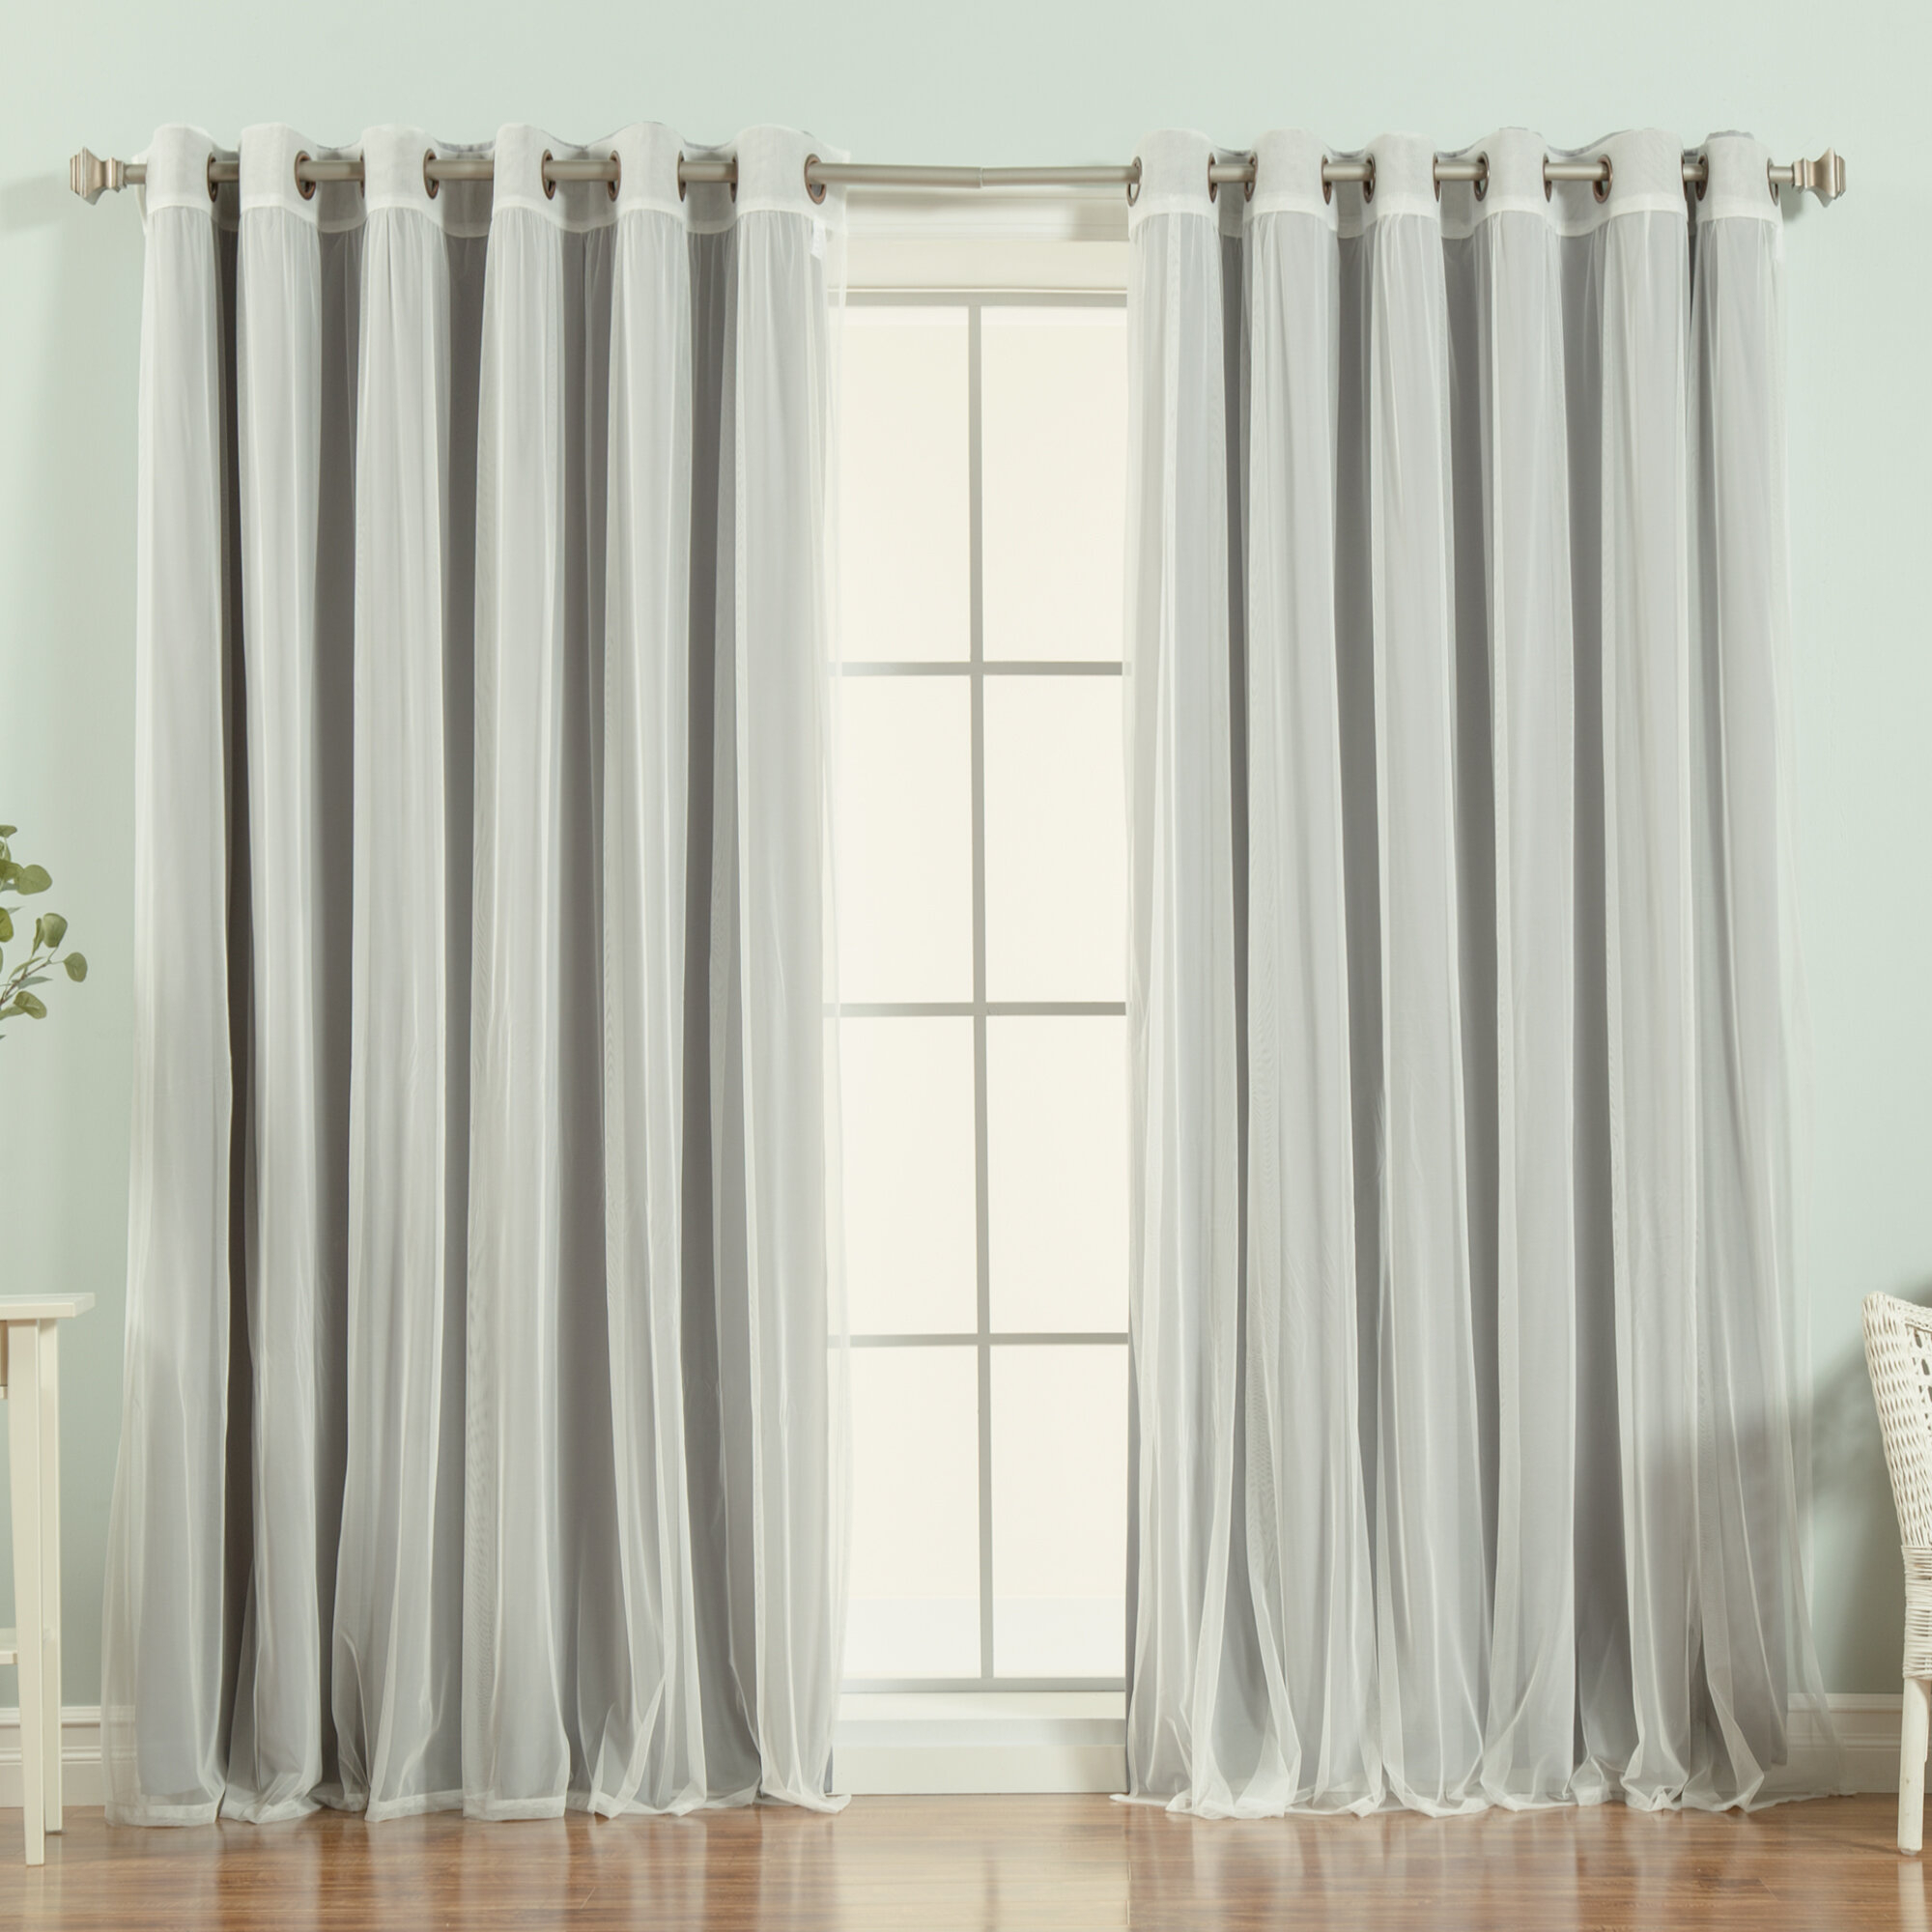 Brunilda Solid Blackout Thermal Grommet Curtain Panels Within Tulle Sheer With Attached Valance And Blackout 4 Piece Curtain Panel Pairs (View 17 of 30)